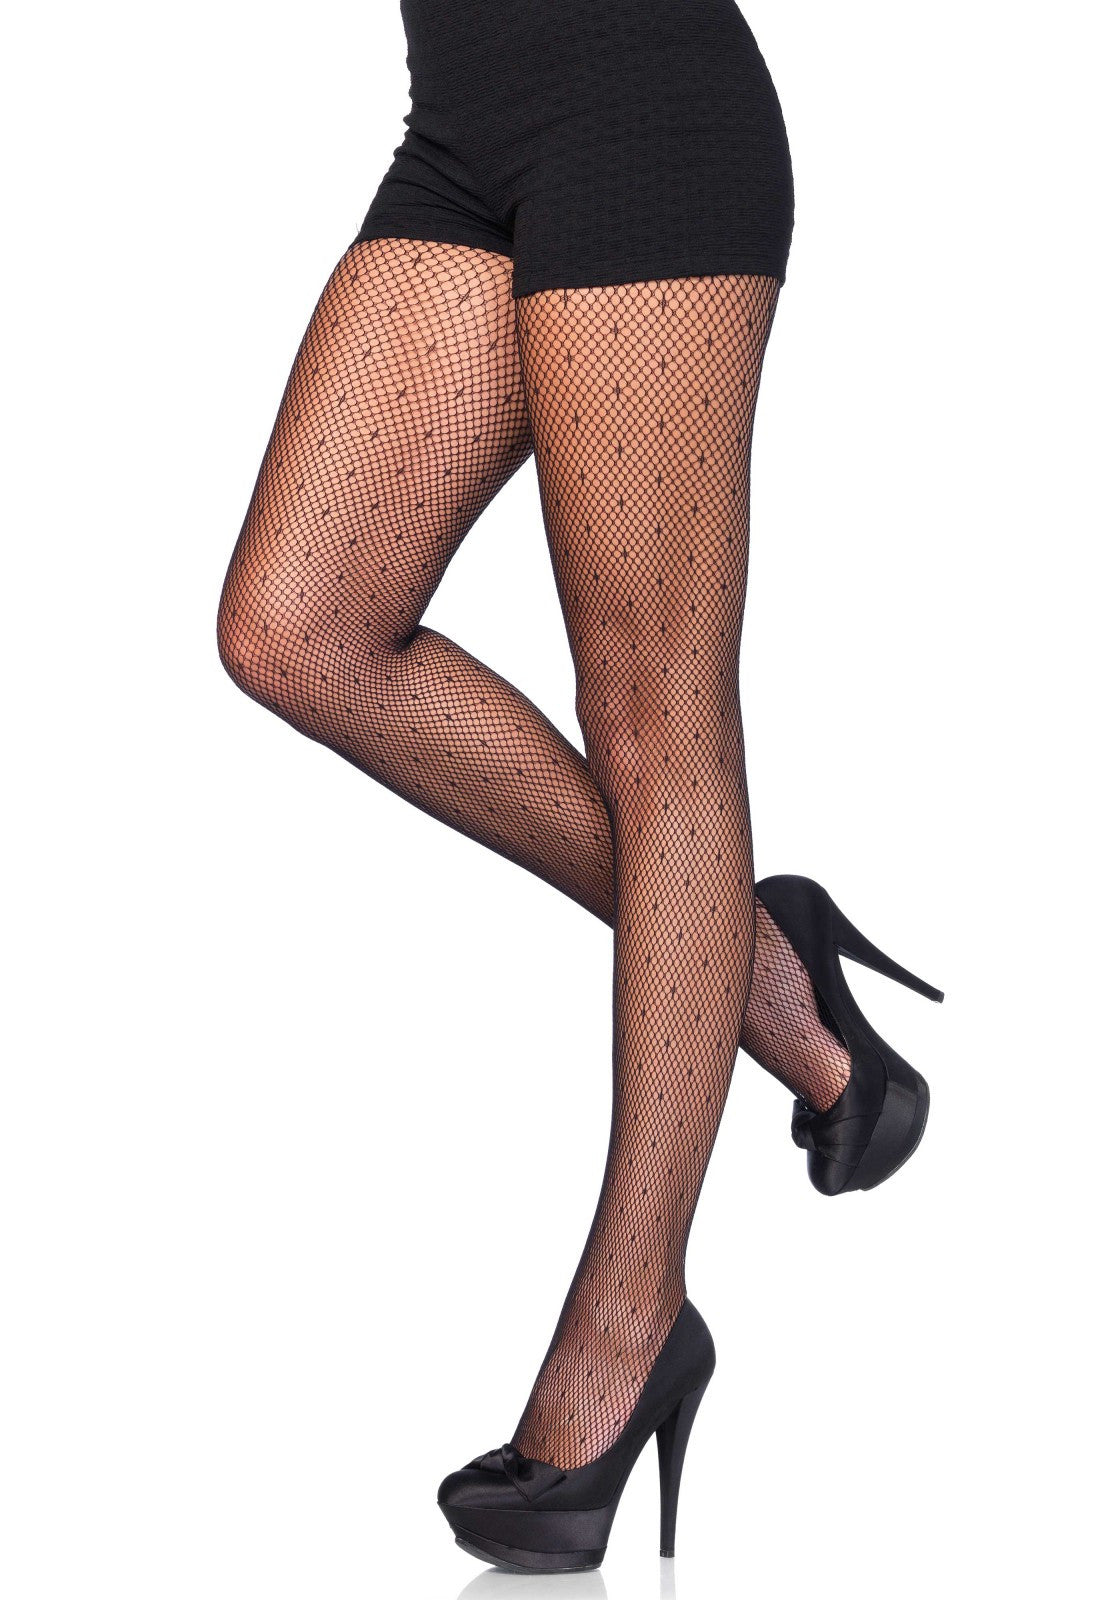 Dotted Net Pantyhose